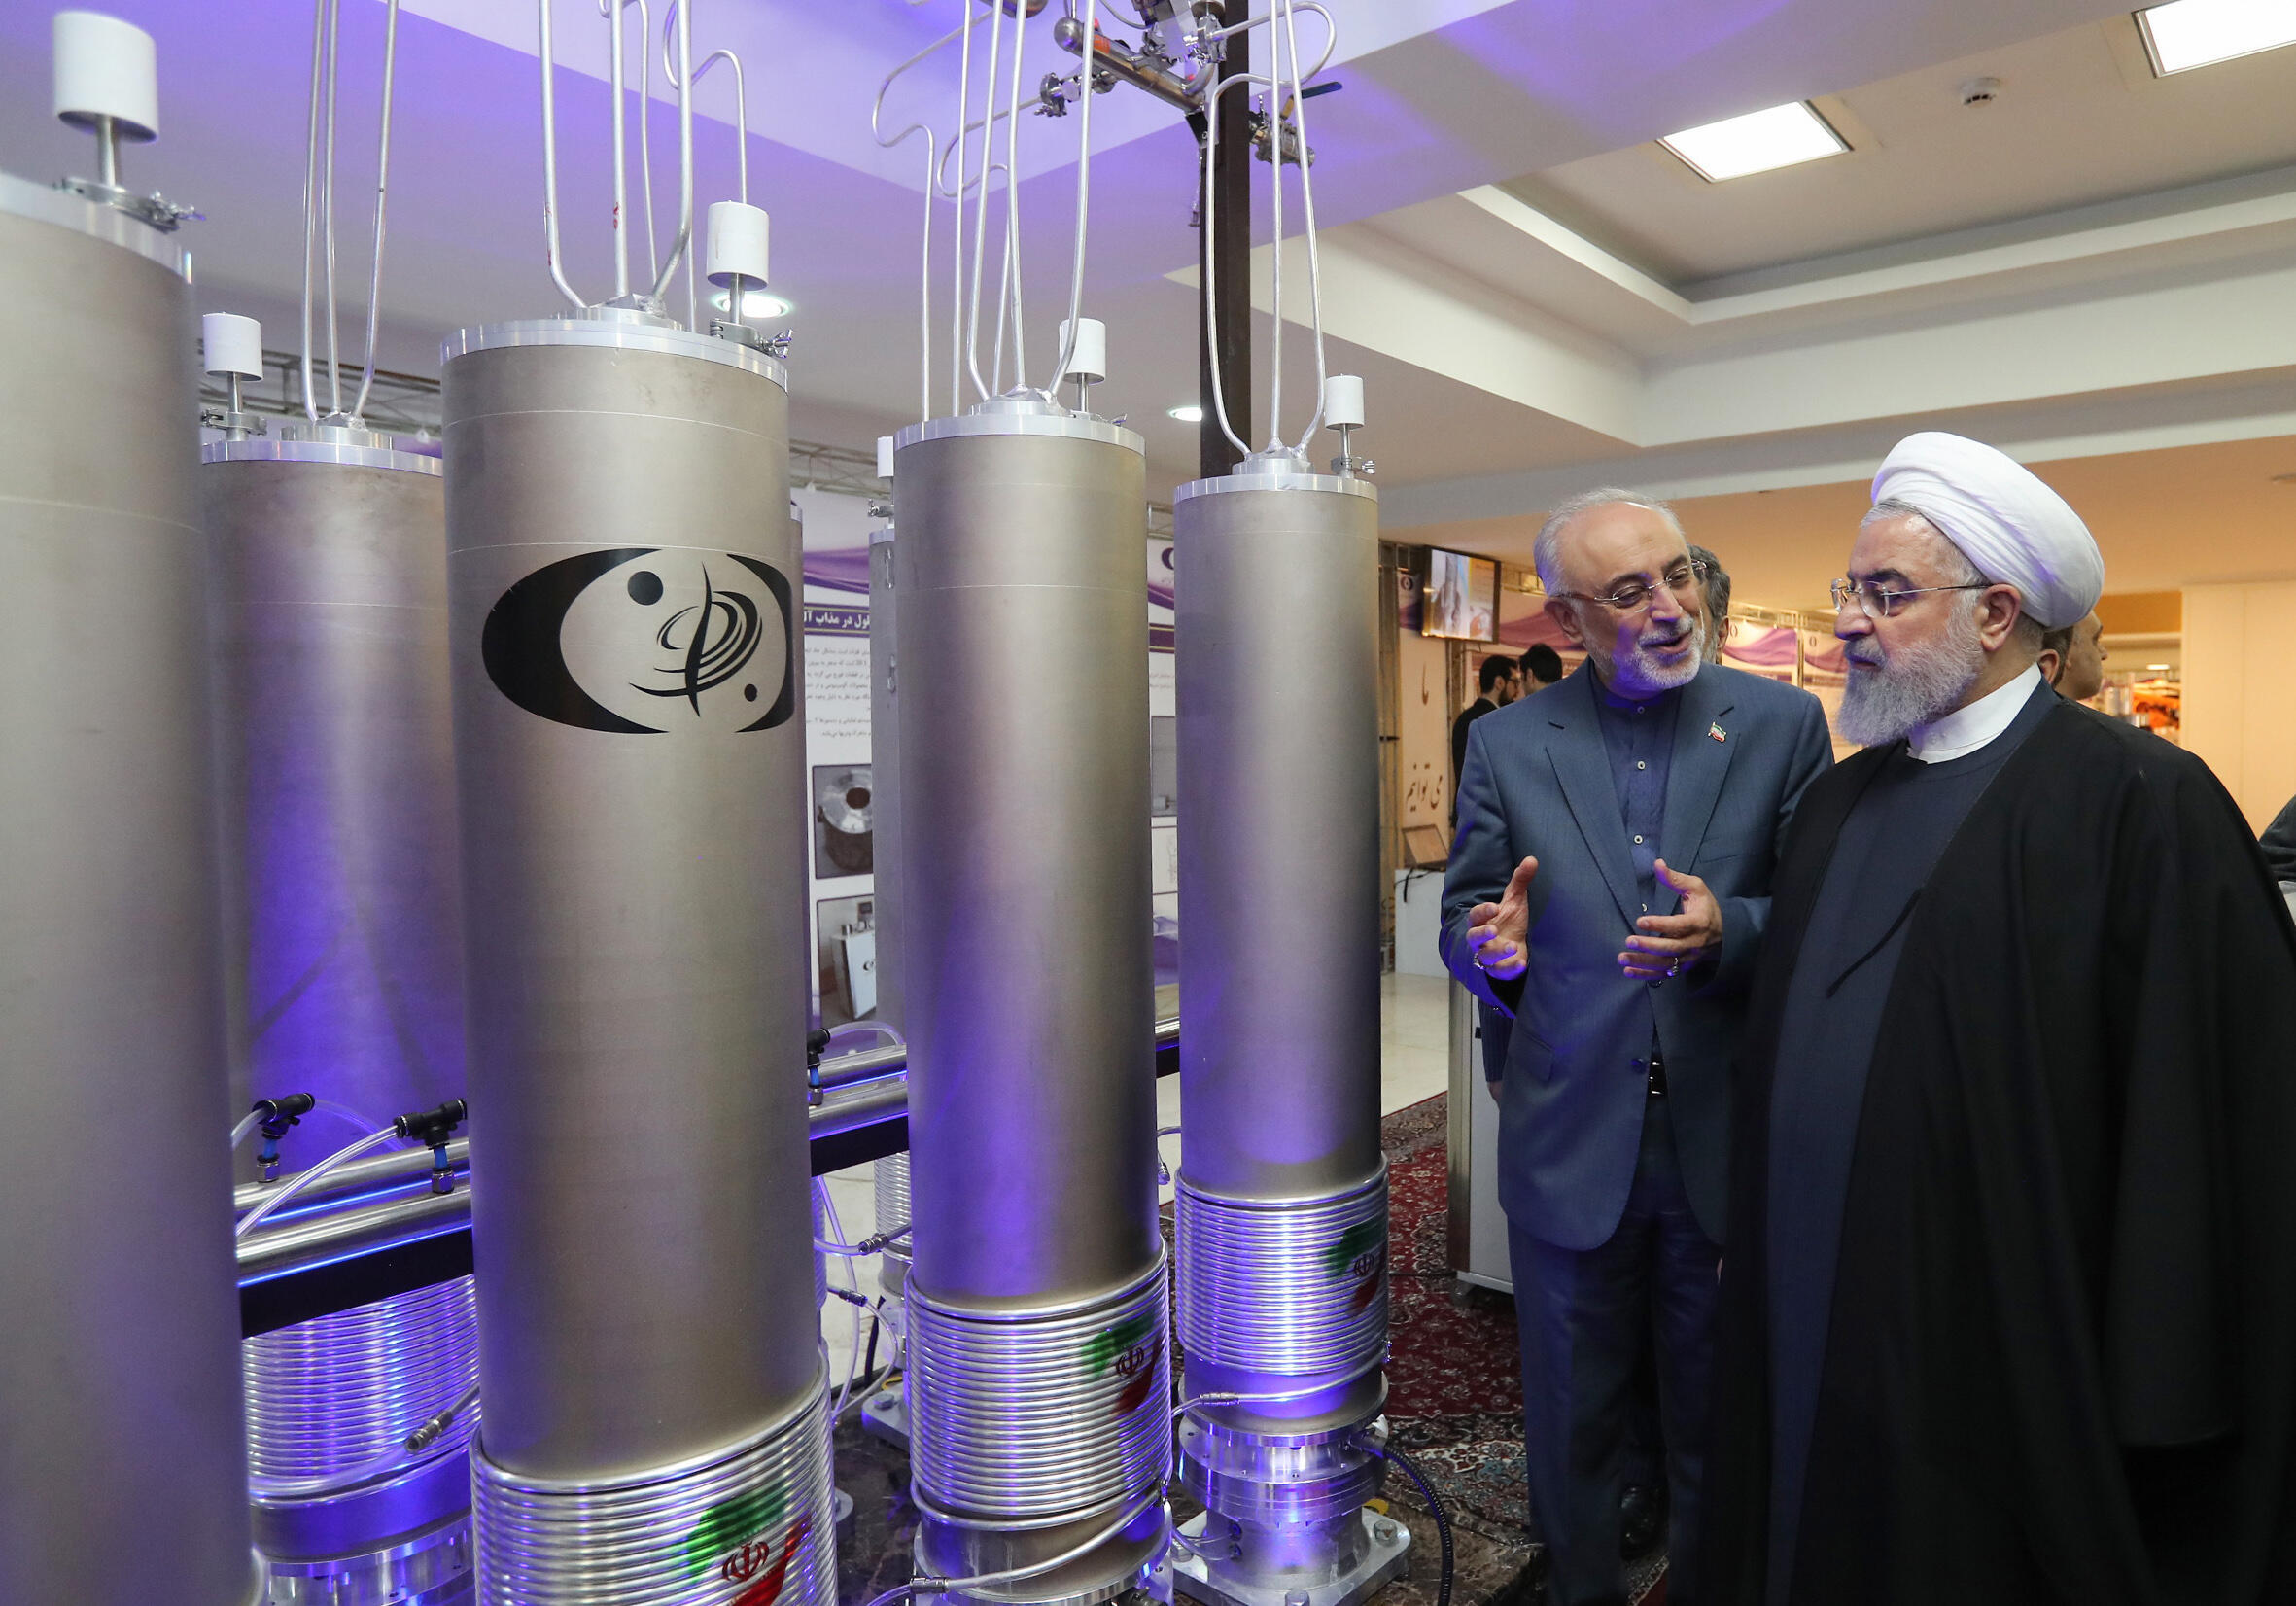 Iran's atomic agency chief Ali Akbar Salehi speaks to President Hassan Rouhani in this handout picture made available by the presidential office on April 9, 2019